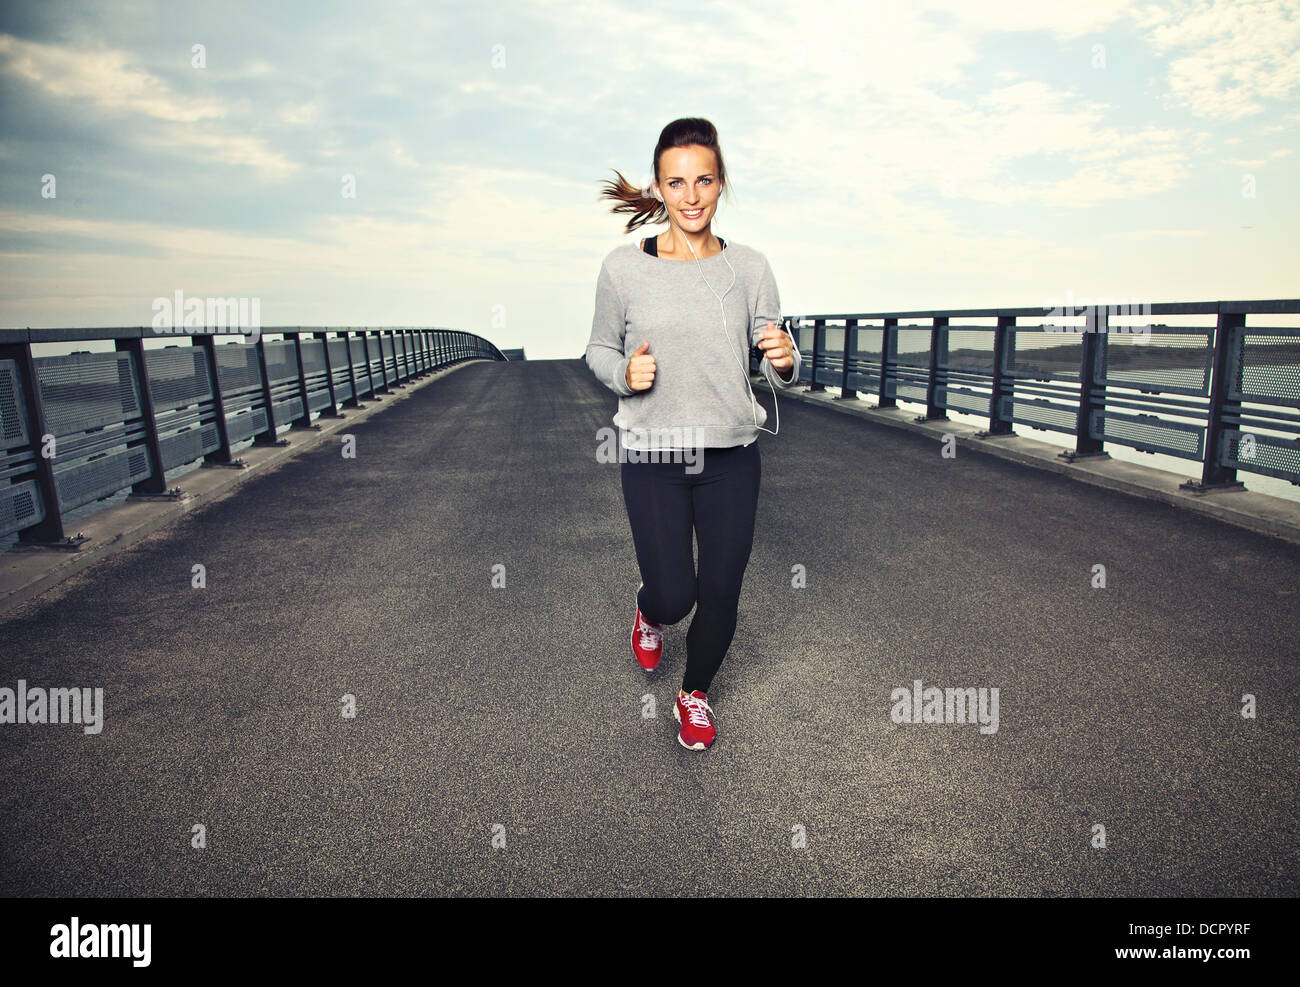 Female runner faisant de l'exercice en cours Photo Stock